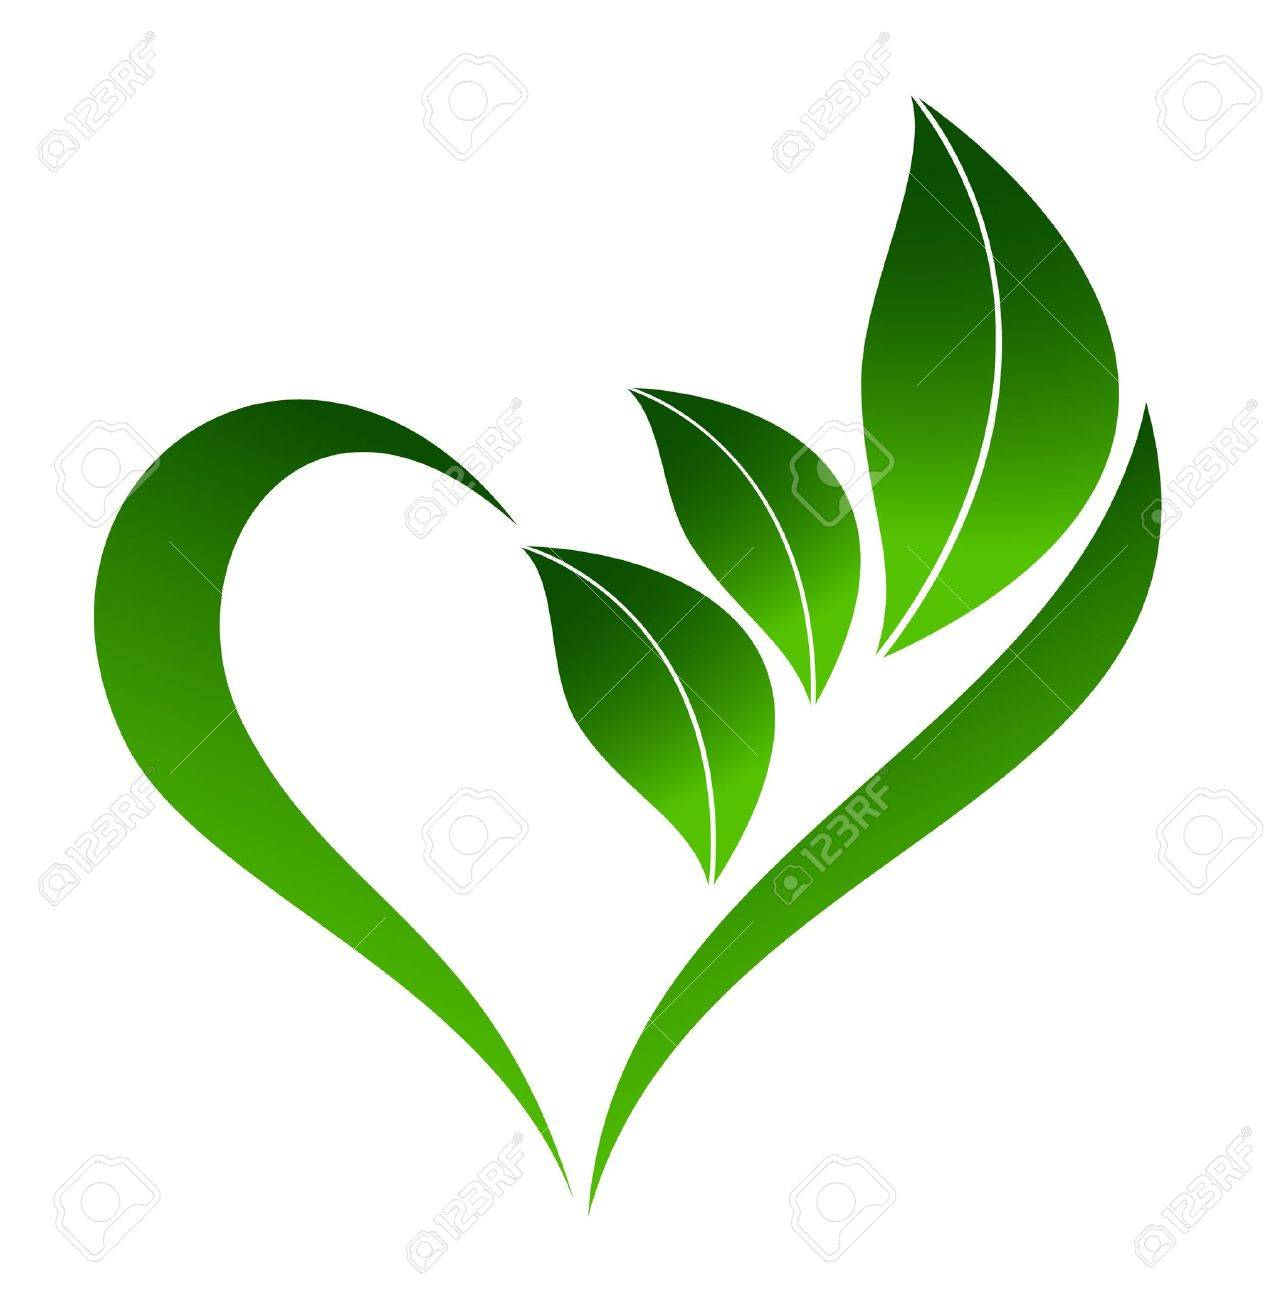 Abstract Plant Icon With Heart Element Royalty Free Cliparts Vectors And Stock Illustration Image 15988922